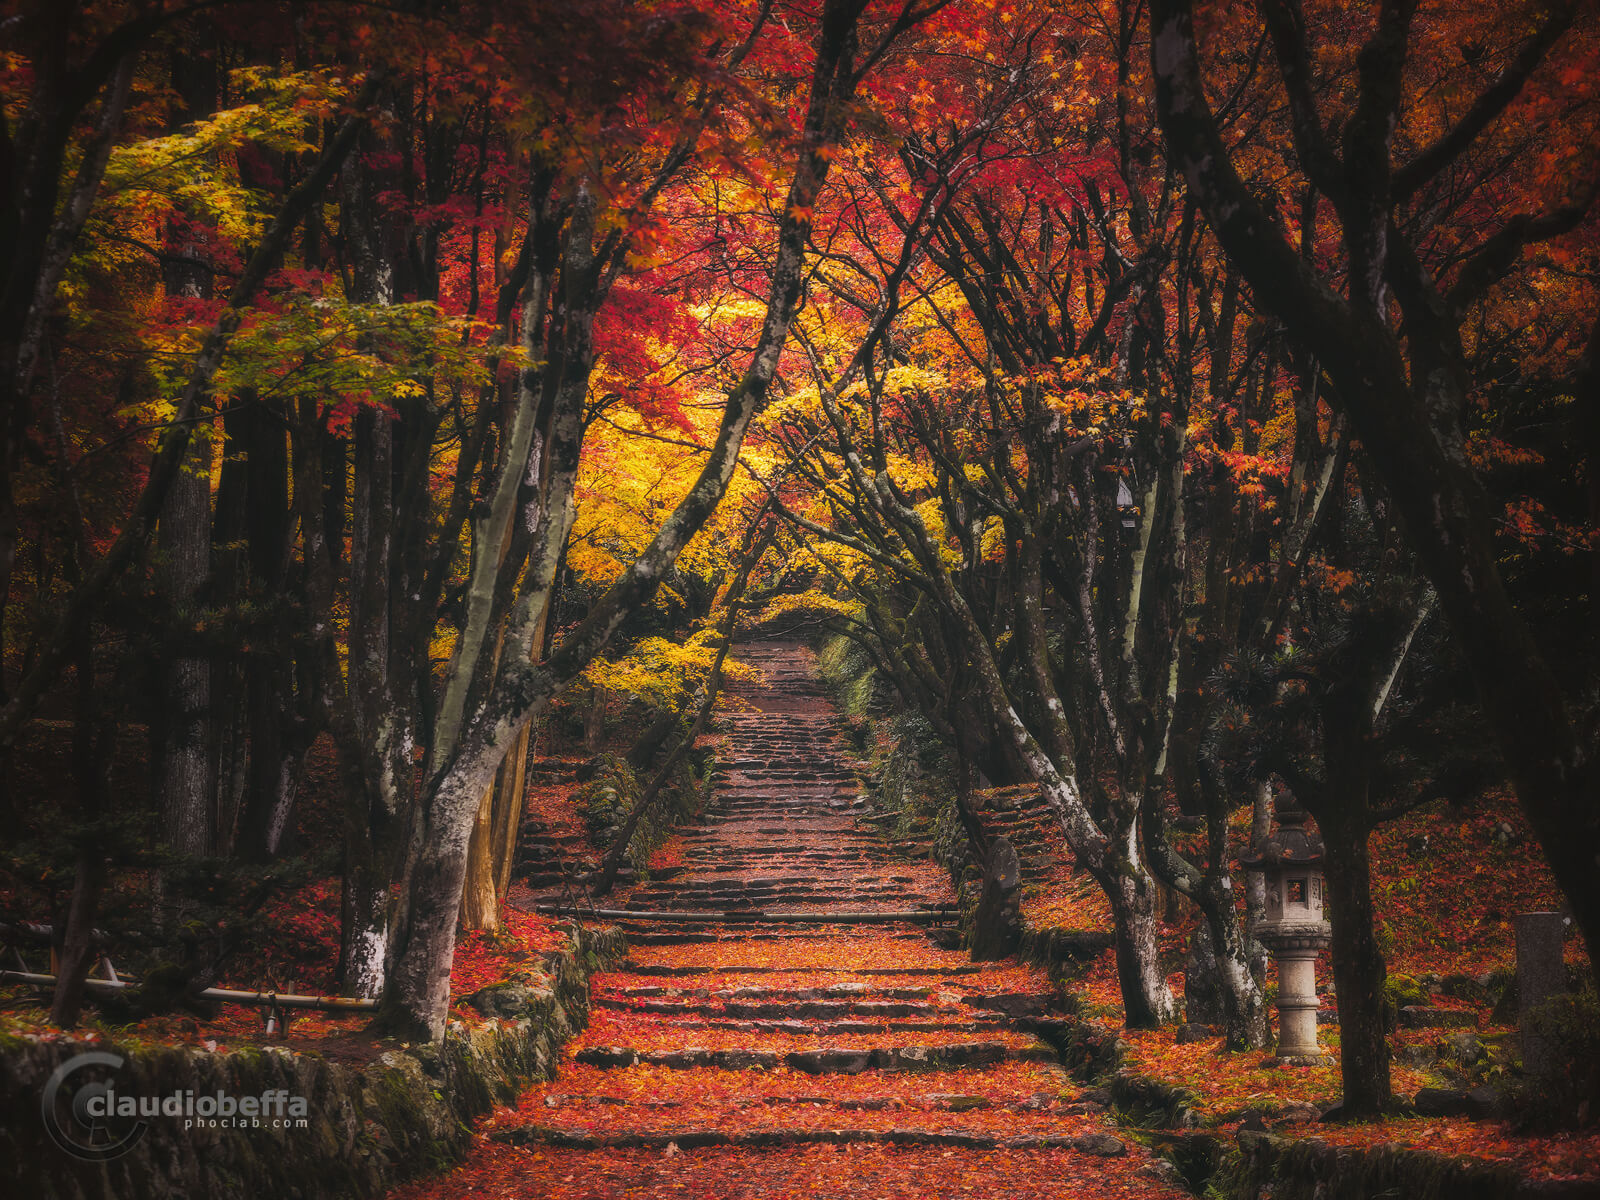 path to the forbidden forest, Shrine, Forest, Momiji, Autumn, Japan, Nature, Travel